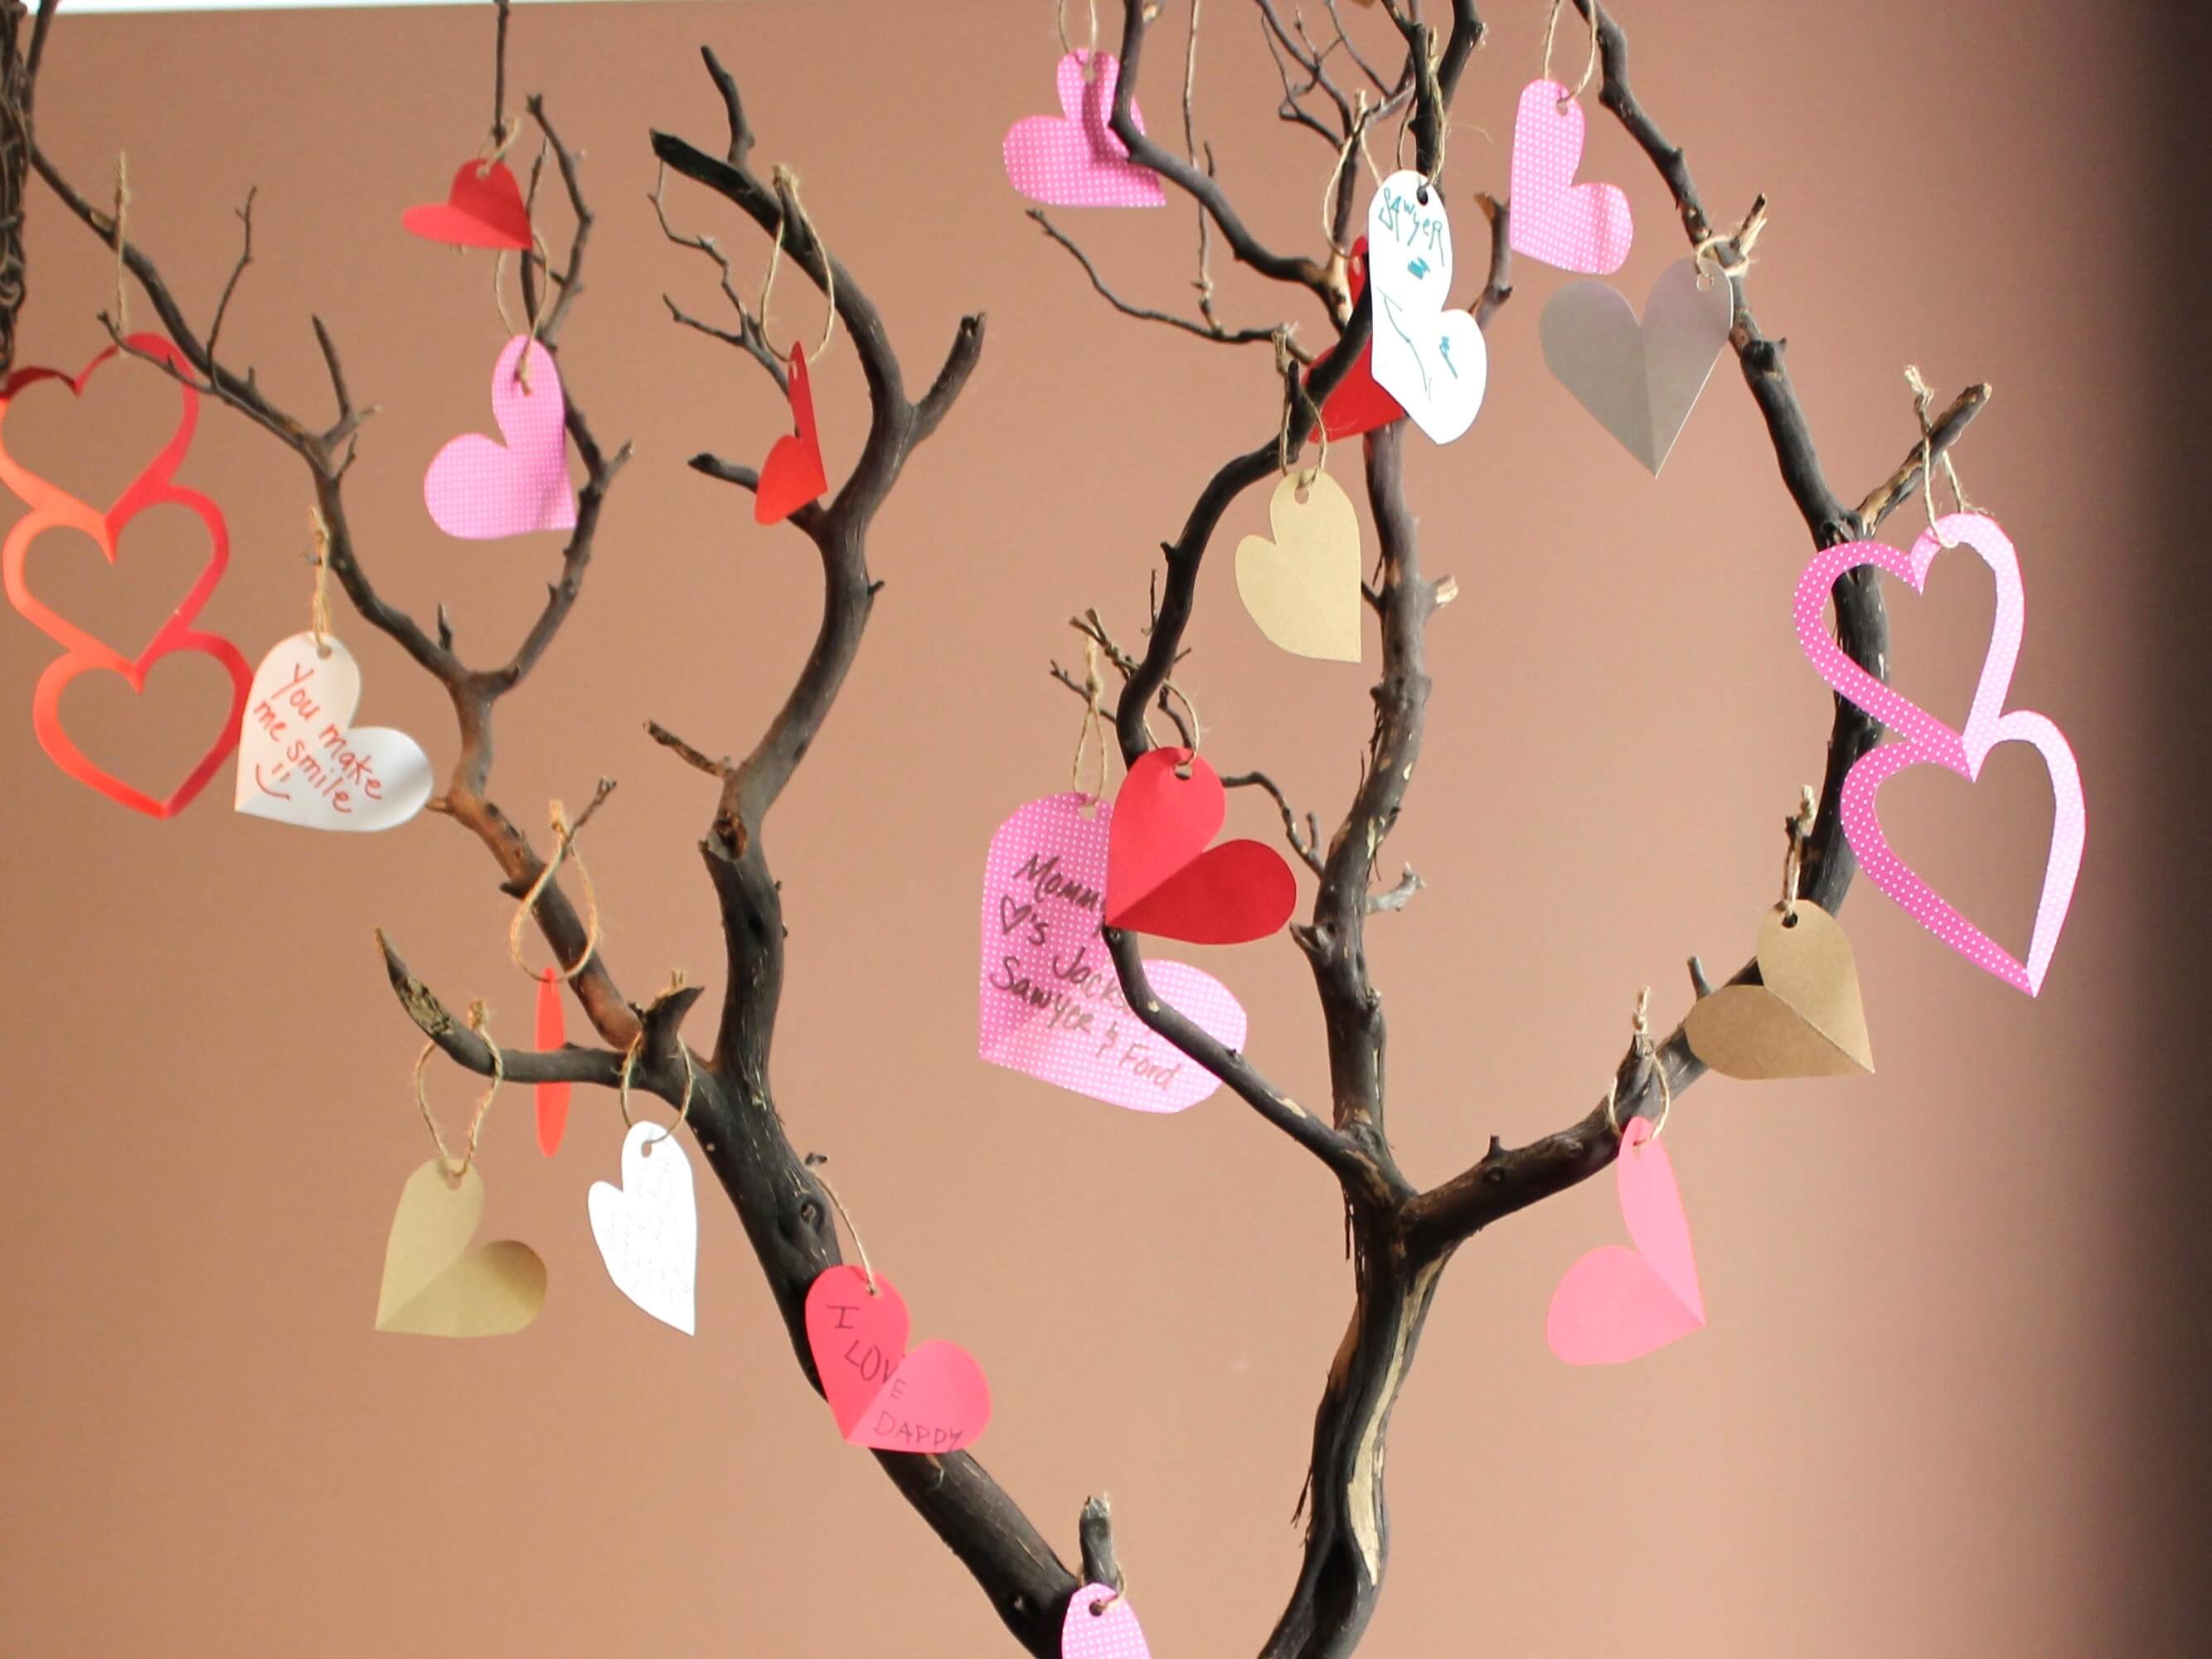 Romantic diy valentines day decor ideas for home for Home decorations for valentine s day